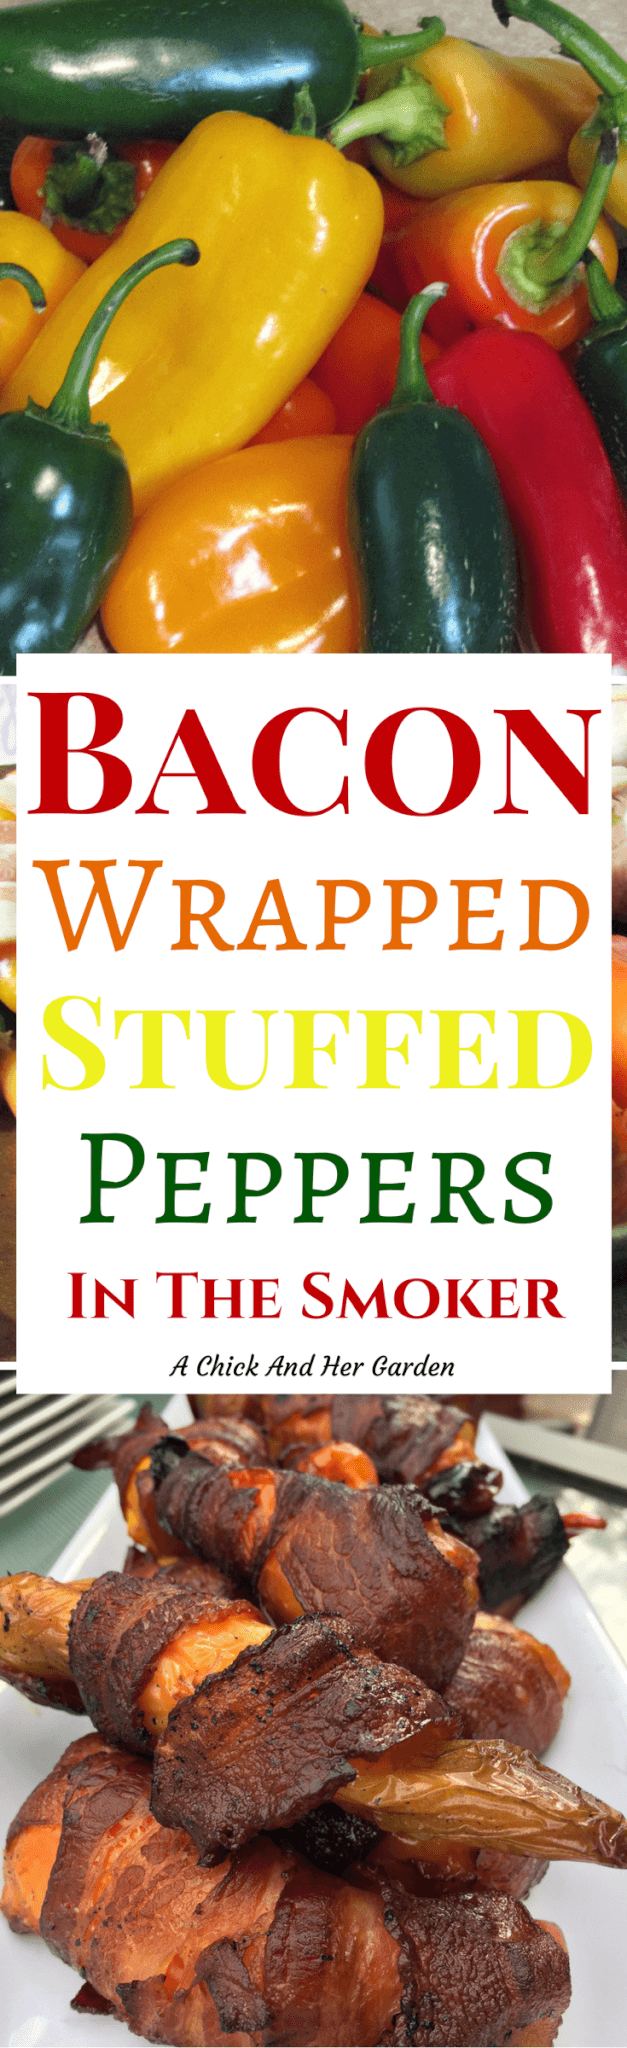 Looking for a great party snack in the smoker?? Try this recipe for stuffed peppers! The fact that they're wrapped in bacon is an added bonus!